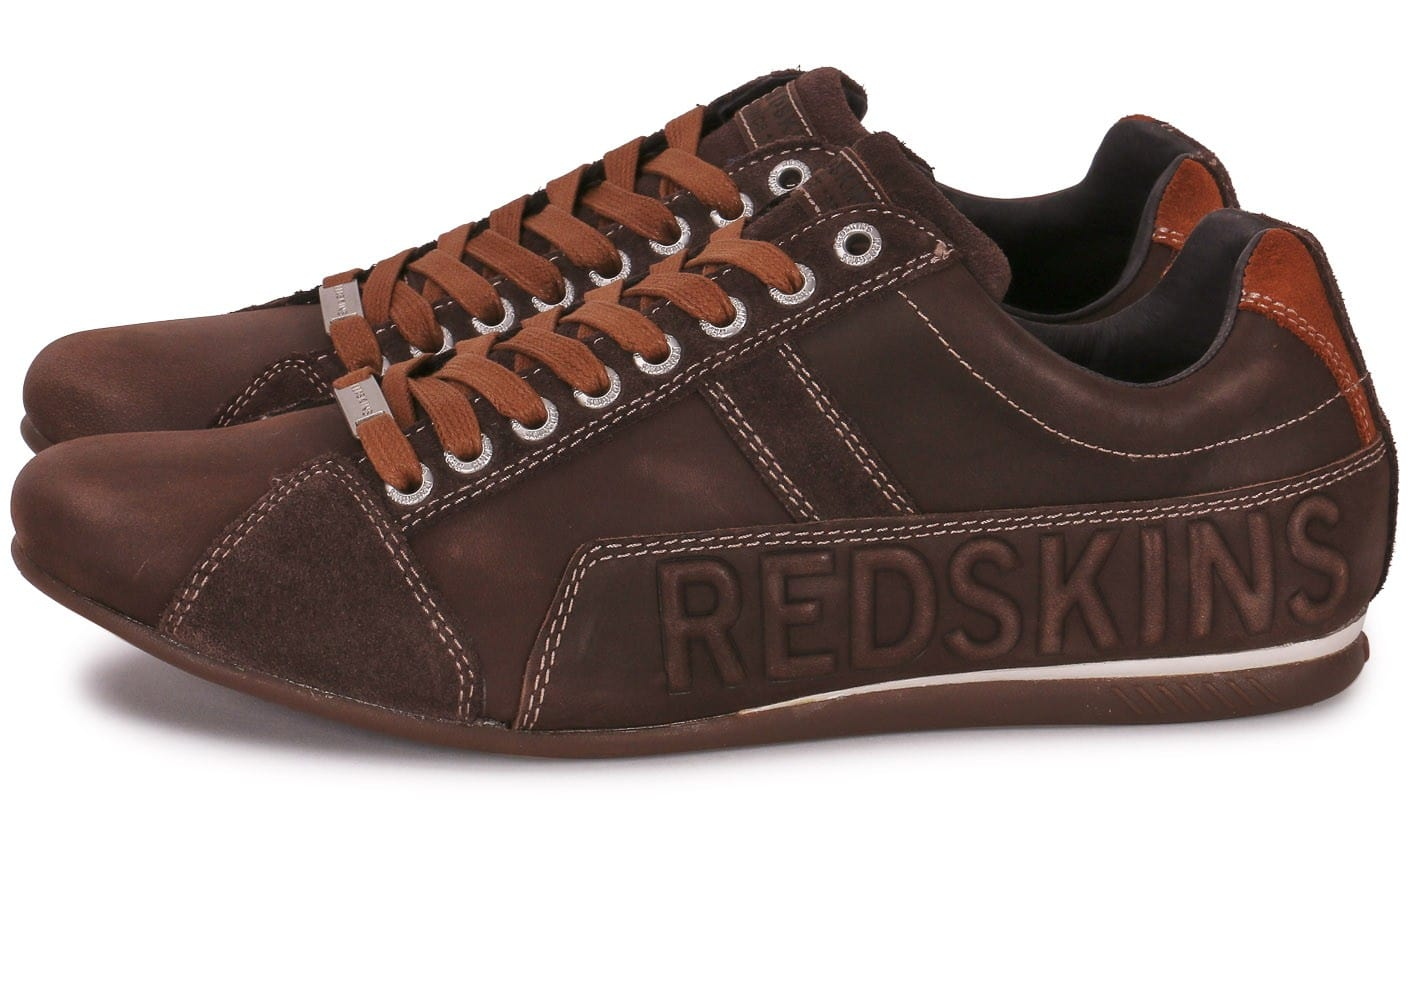 Chaussures 1zgfdijgt Homme Marron Redskins Casual SqHrSI